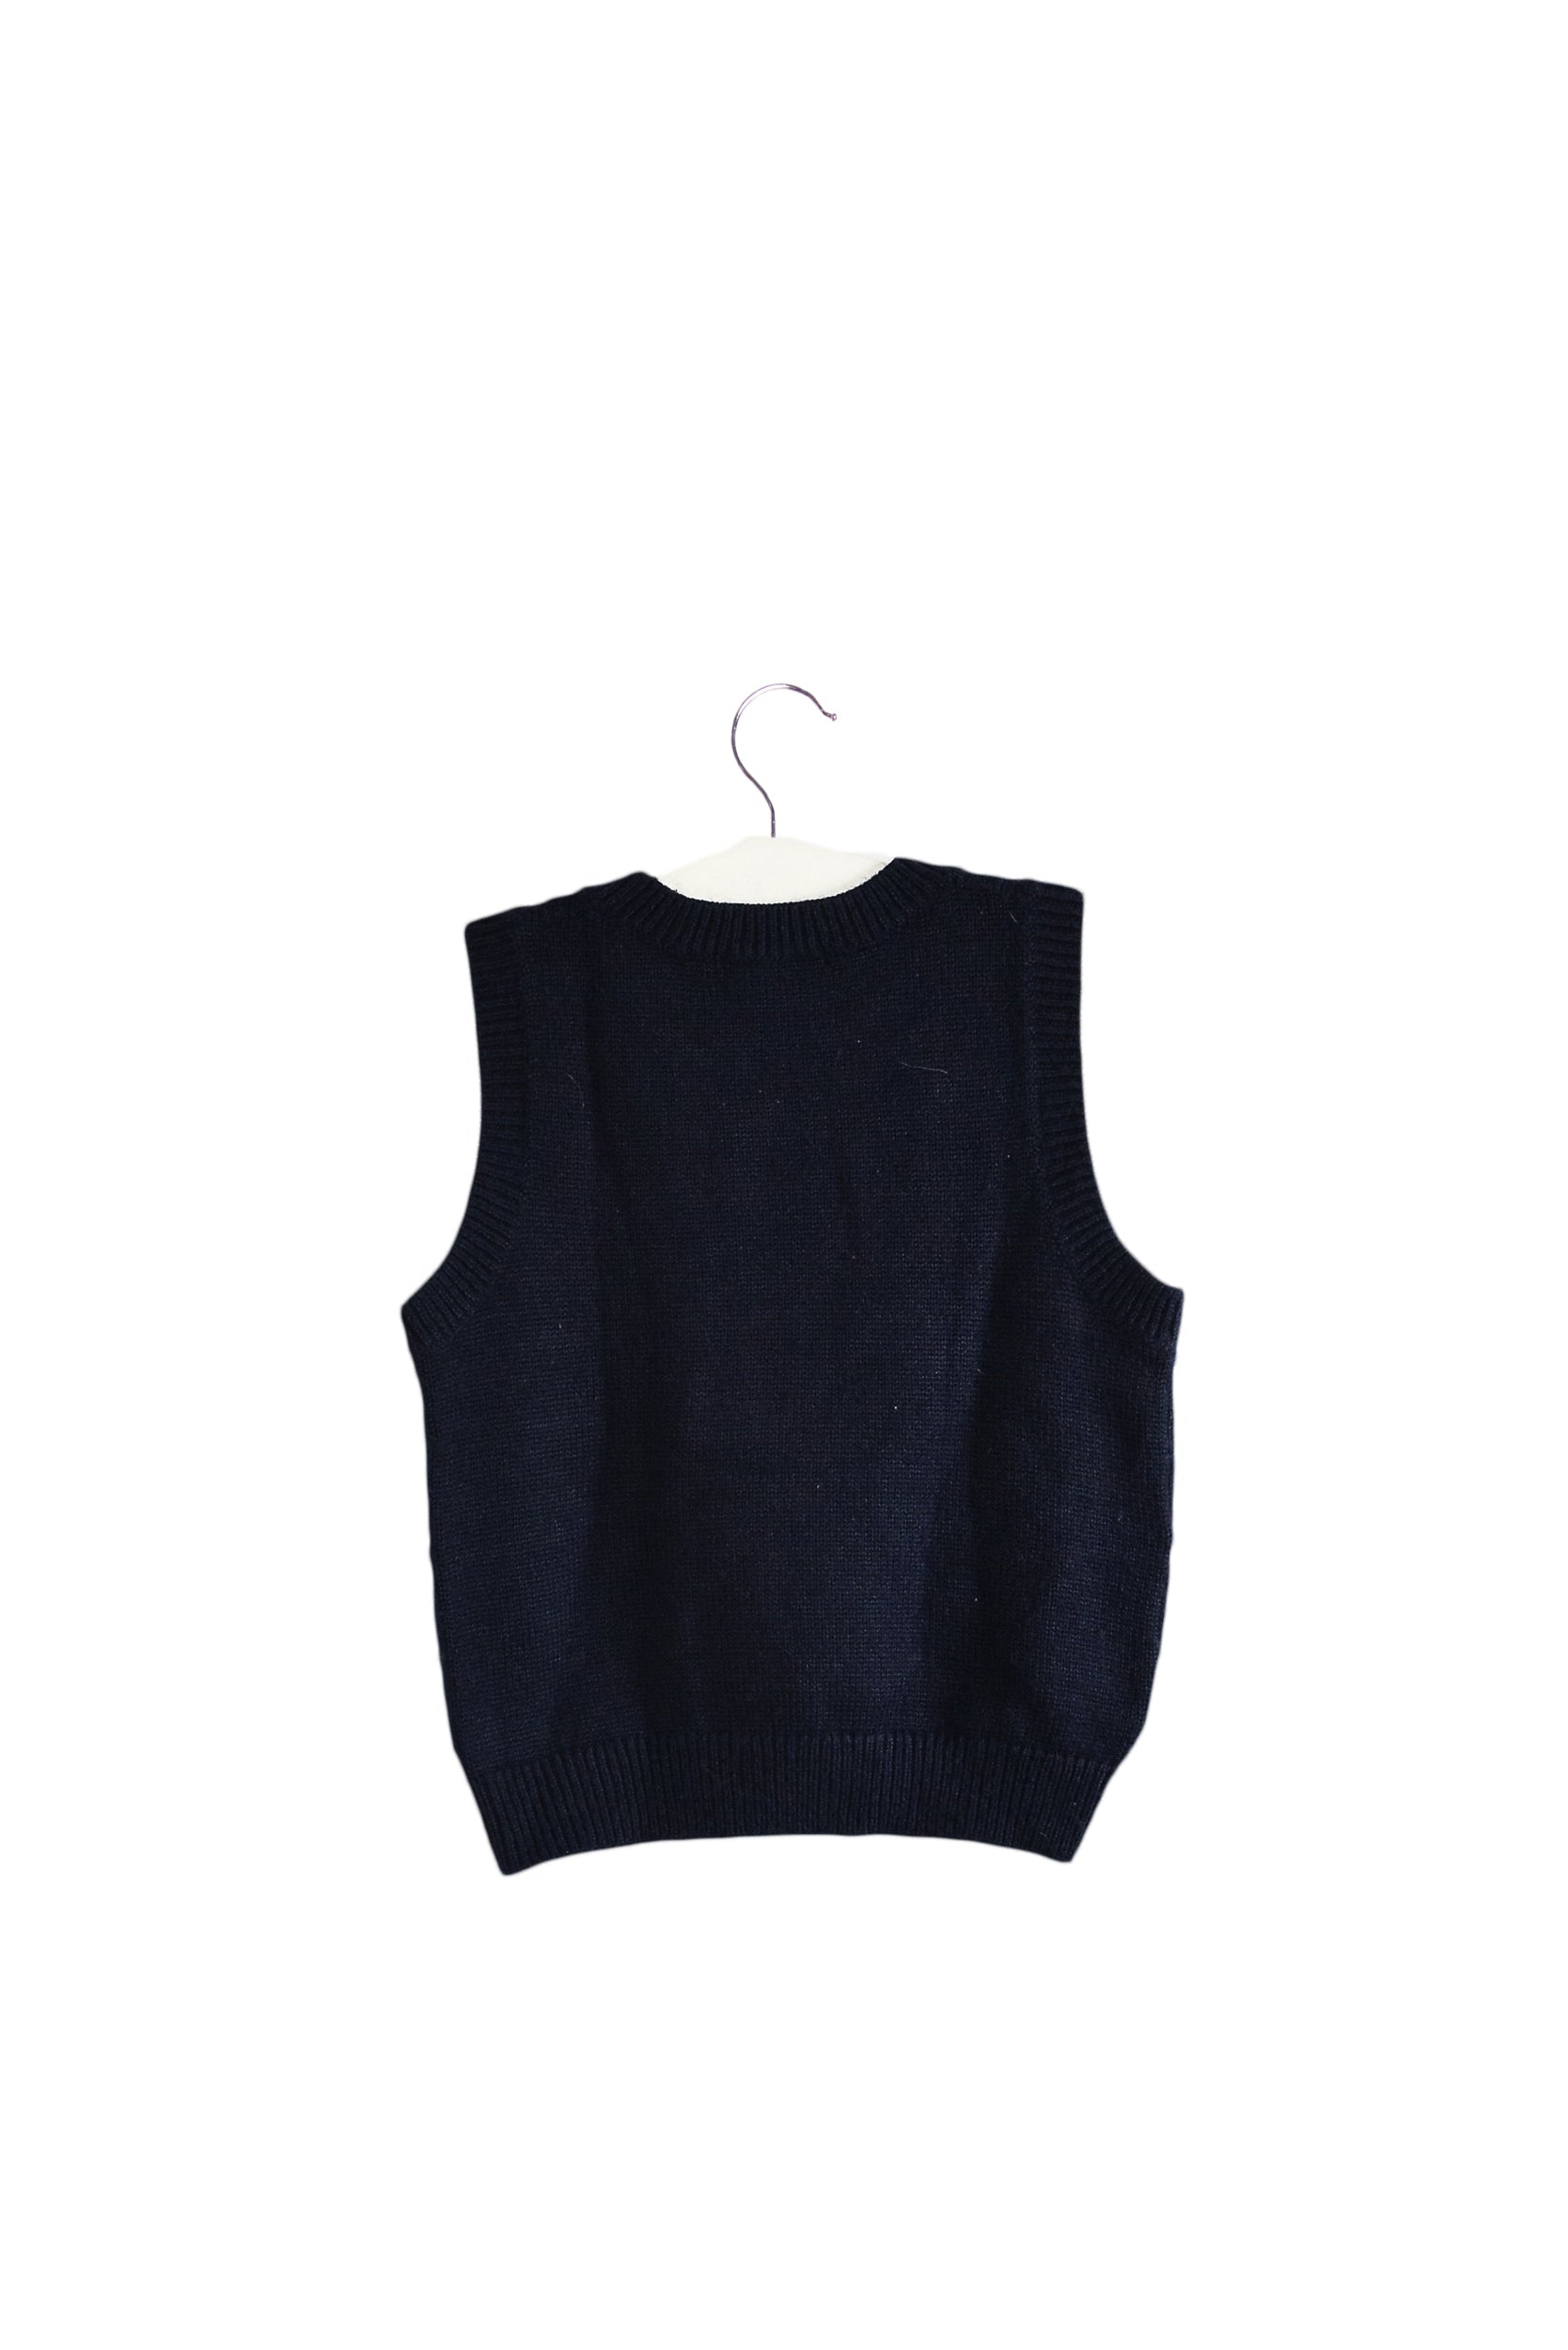 Knit Sweater 2T at Retykle